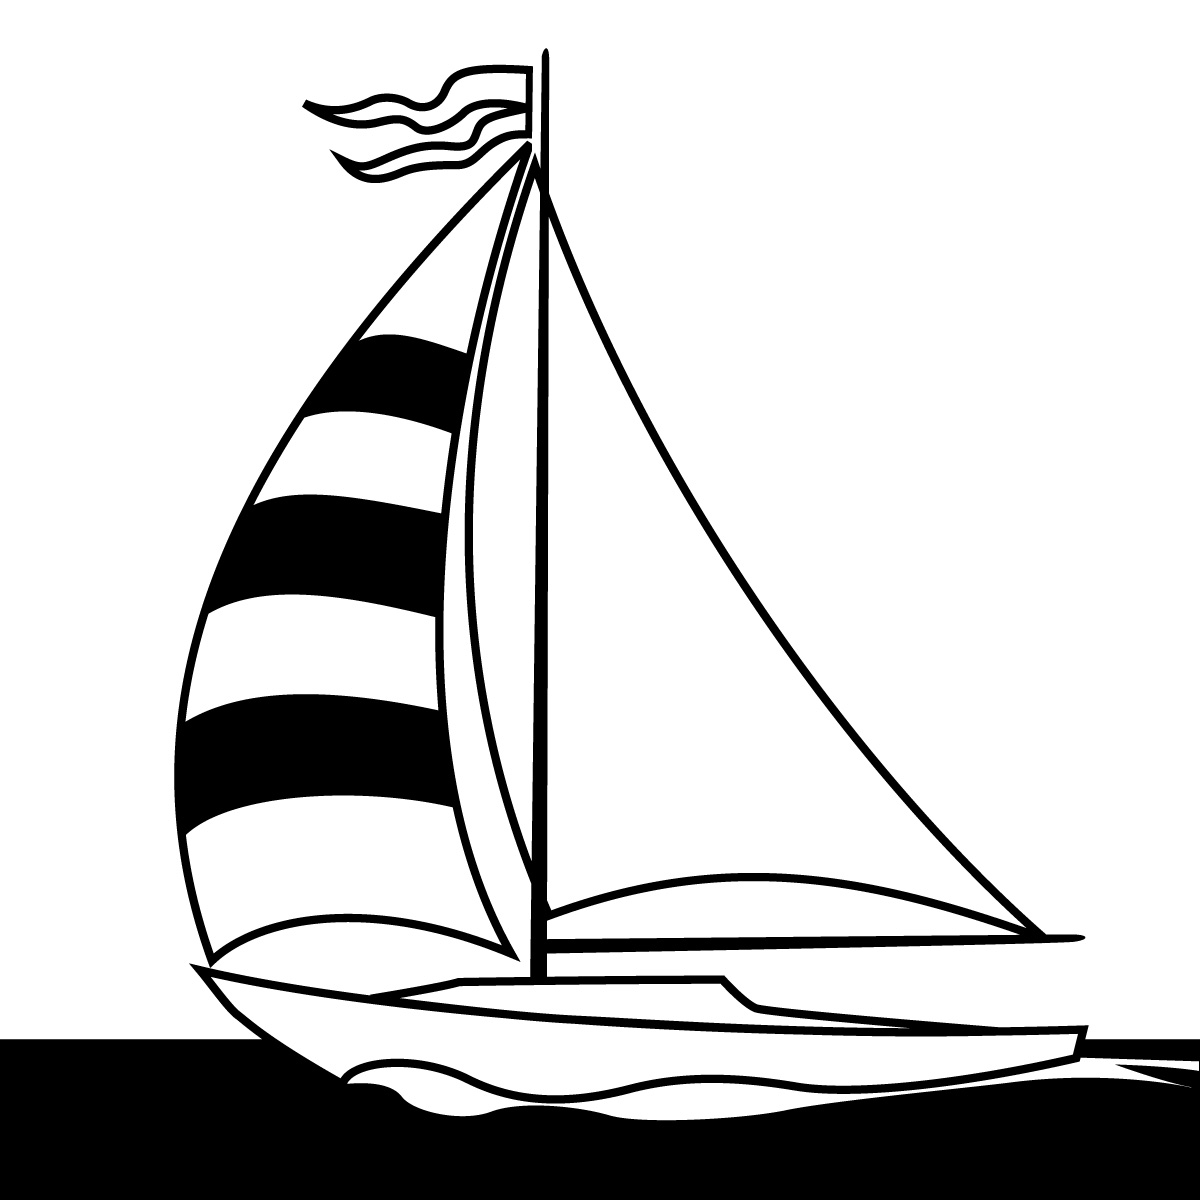 Sailing 20clipart | Clipart Panda - Free Clipart Images